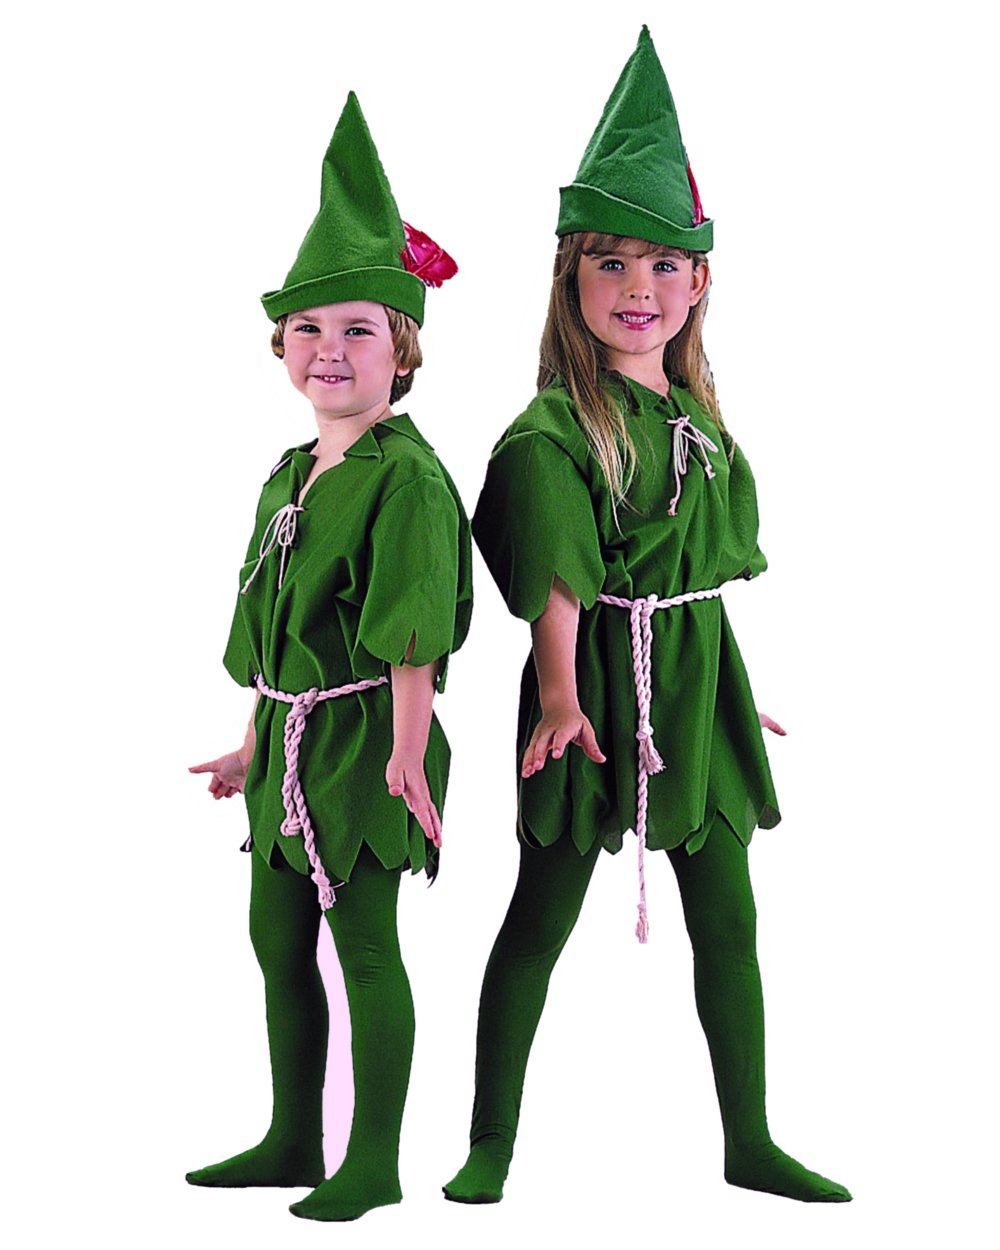 Amazon.com Charades Childu0027s Peter Pan Costume Storybook Green X-Large Toys u0026 Games  sc 1 st  Amazon.com & Amazon.com: Charades Childu0027s Peter Pan Costume Storybook Green X ...